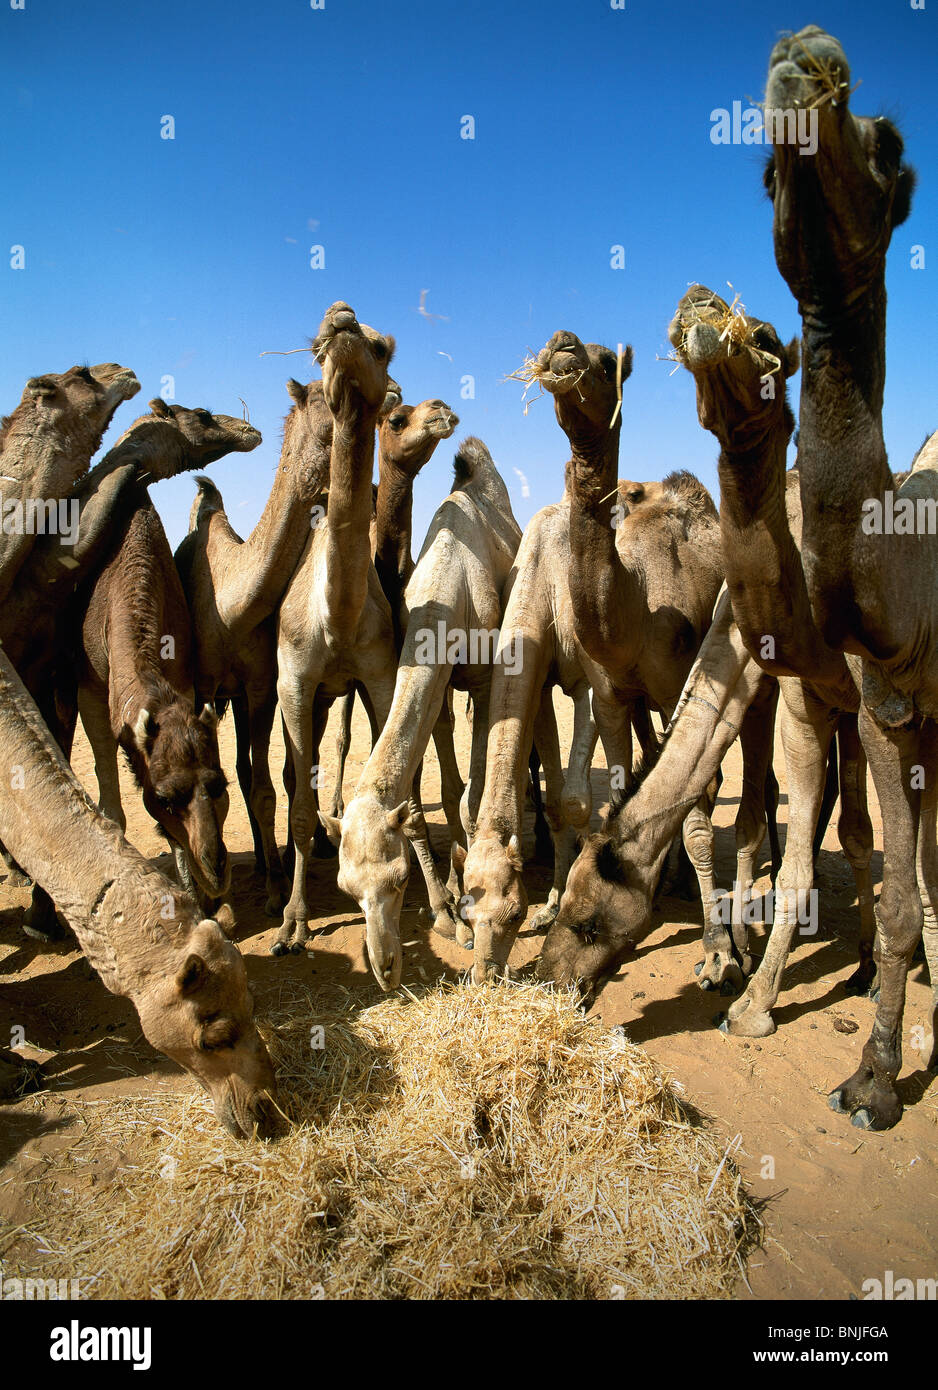 Egypt March 2007 Cairo city Camel market camels animals feeding food straw hay - Stock Image